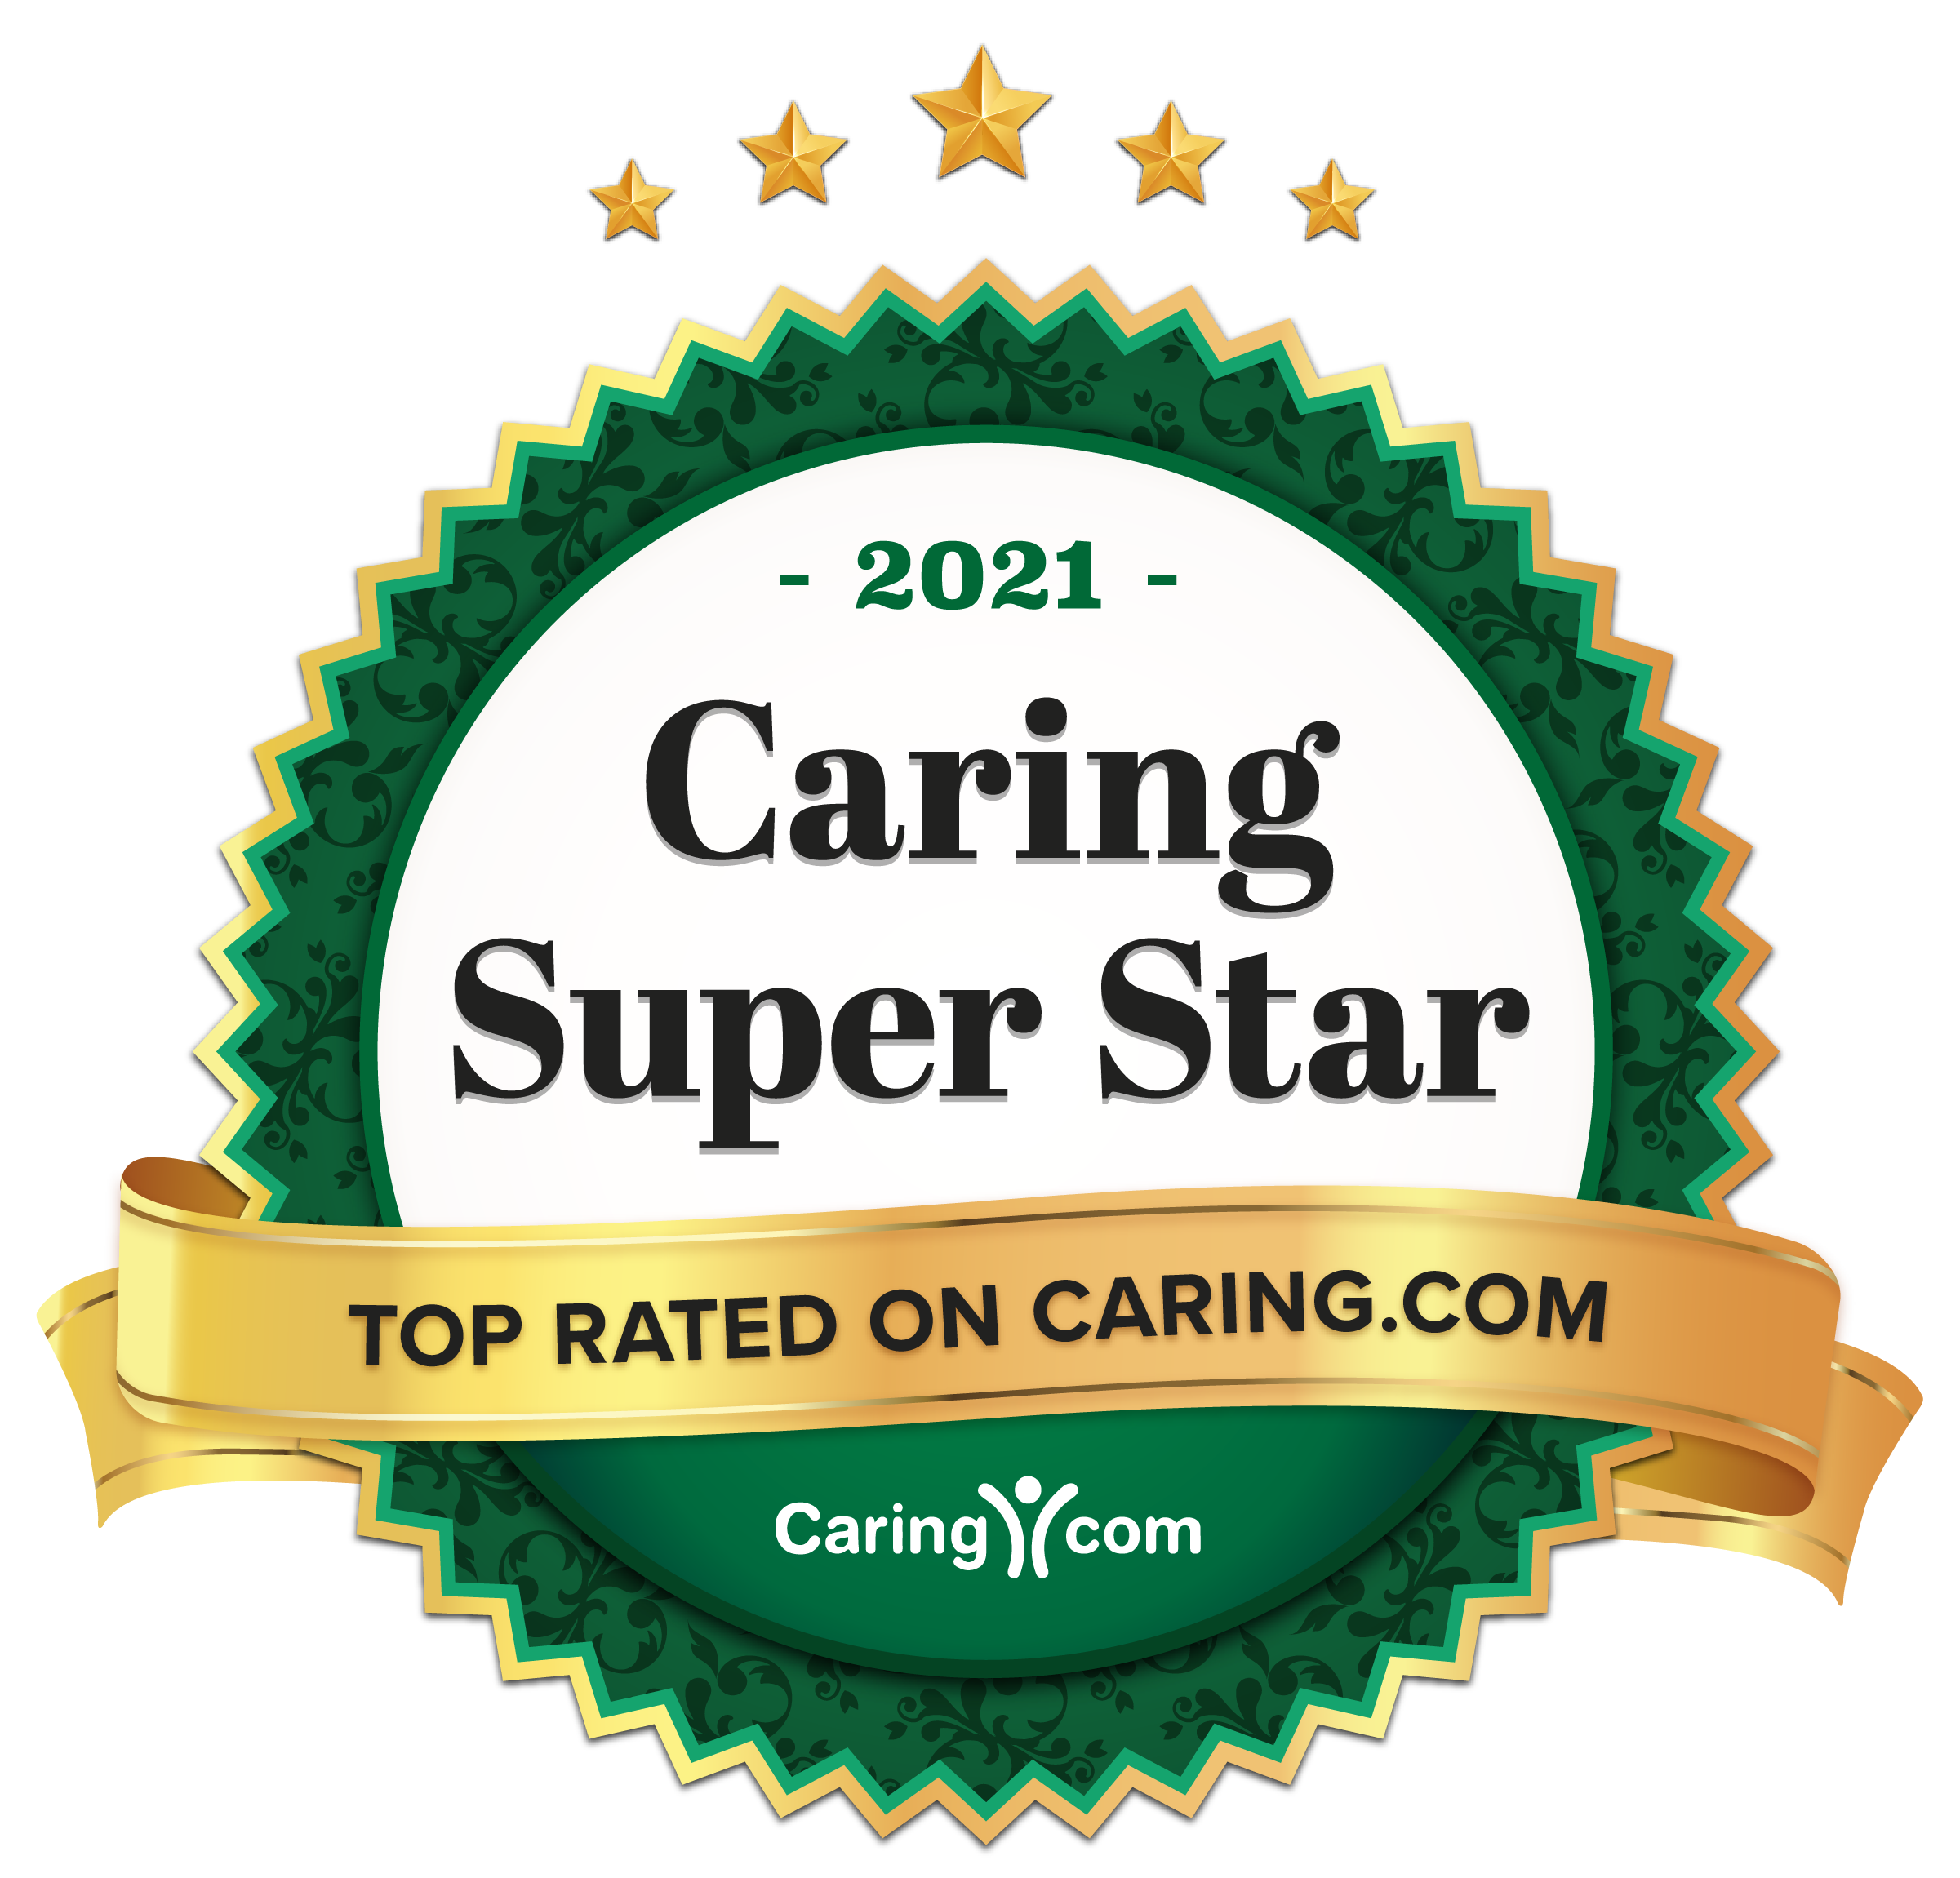 Newforest Estates is a Caring.com Caring Super Star Community for 2021!